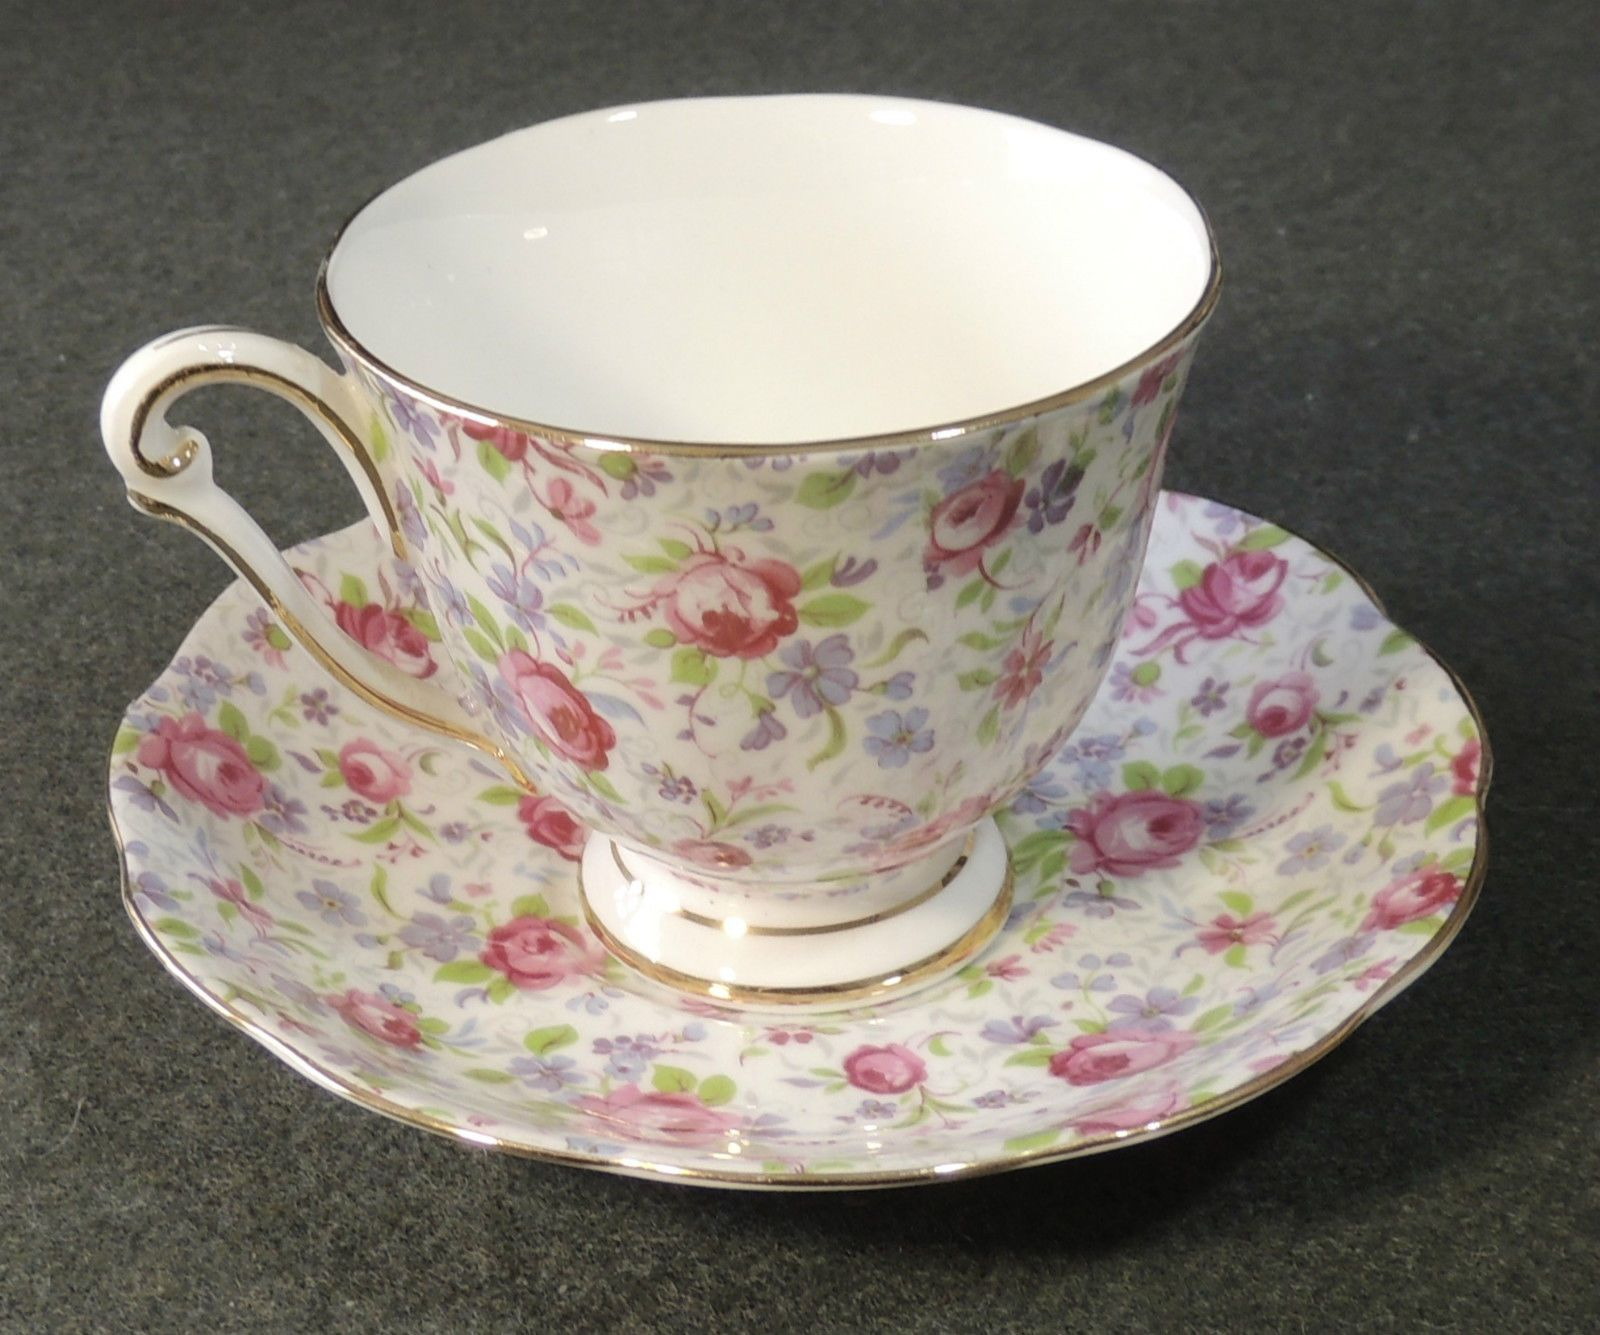 Princess Anne Fine Bone China England Rose Chintz Calico Footed Tea Cup & Saucer • $19.99 - PicClick